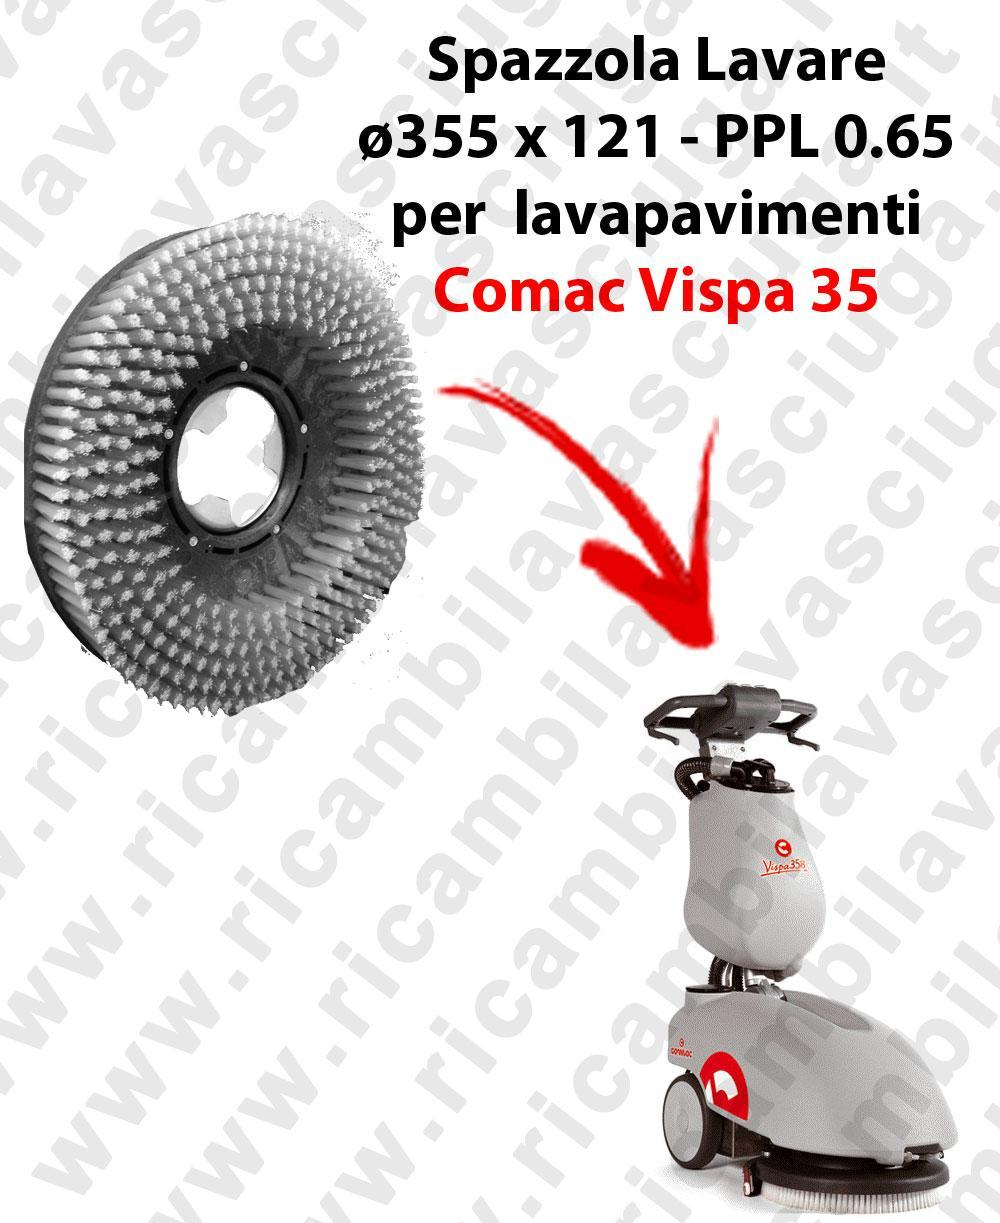 Cleaning Brush for scrubber dryer COMAC VISPA 35. Model: PPL 0.65  ⌀355 X 121